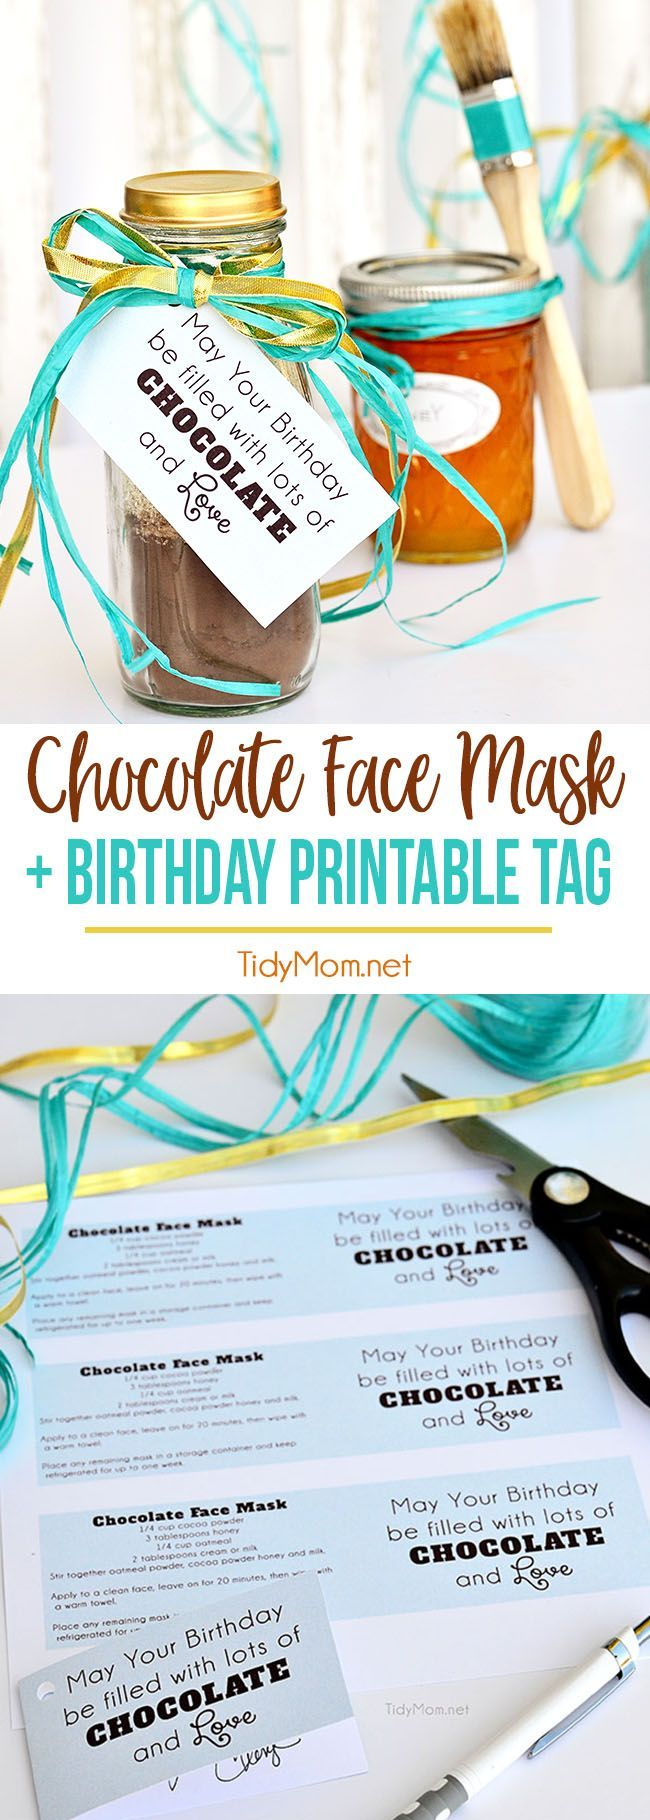 This decadent chocolate facial recipe is ideal for most skin types. Filled with antioxidants that rejuvenate the skin, and will leave your face smooth, soft, and glowing. All Natural Chocolate Face Mask makes a wonderful gift!! Get the recipe and free pri